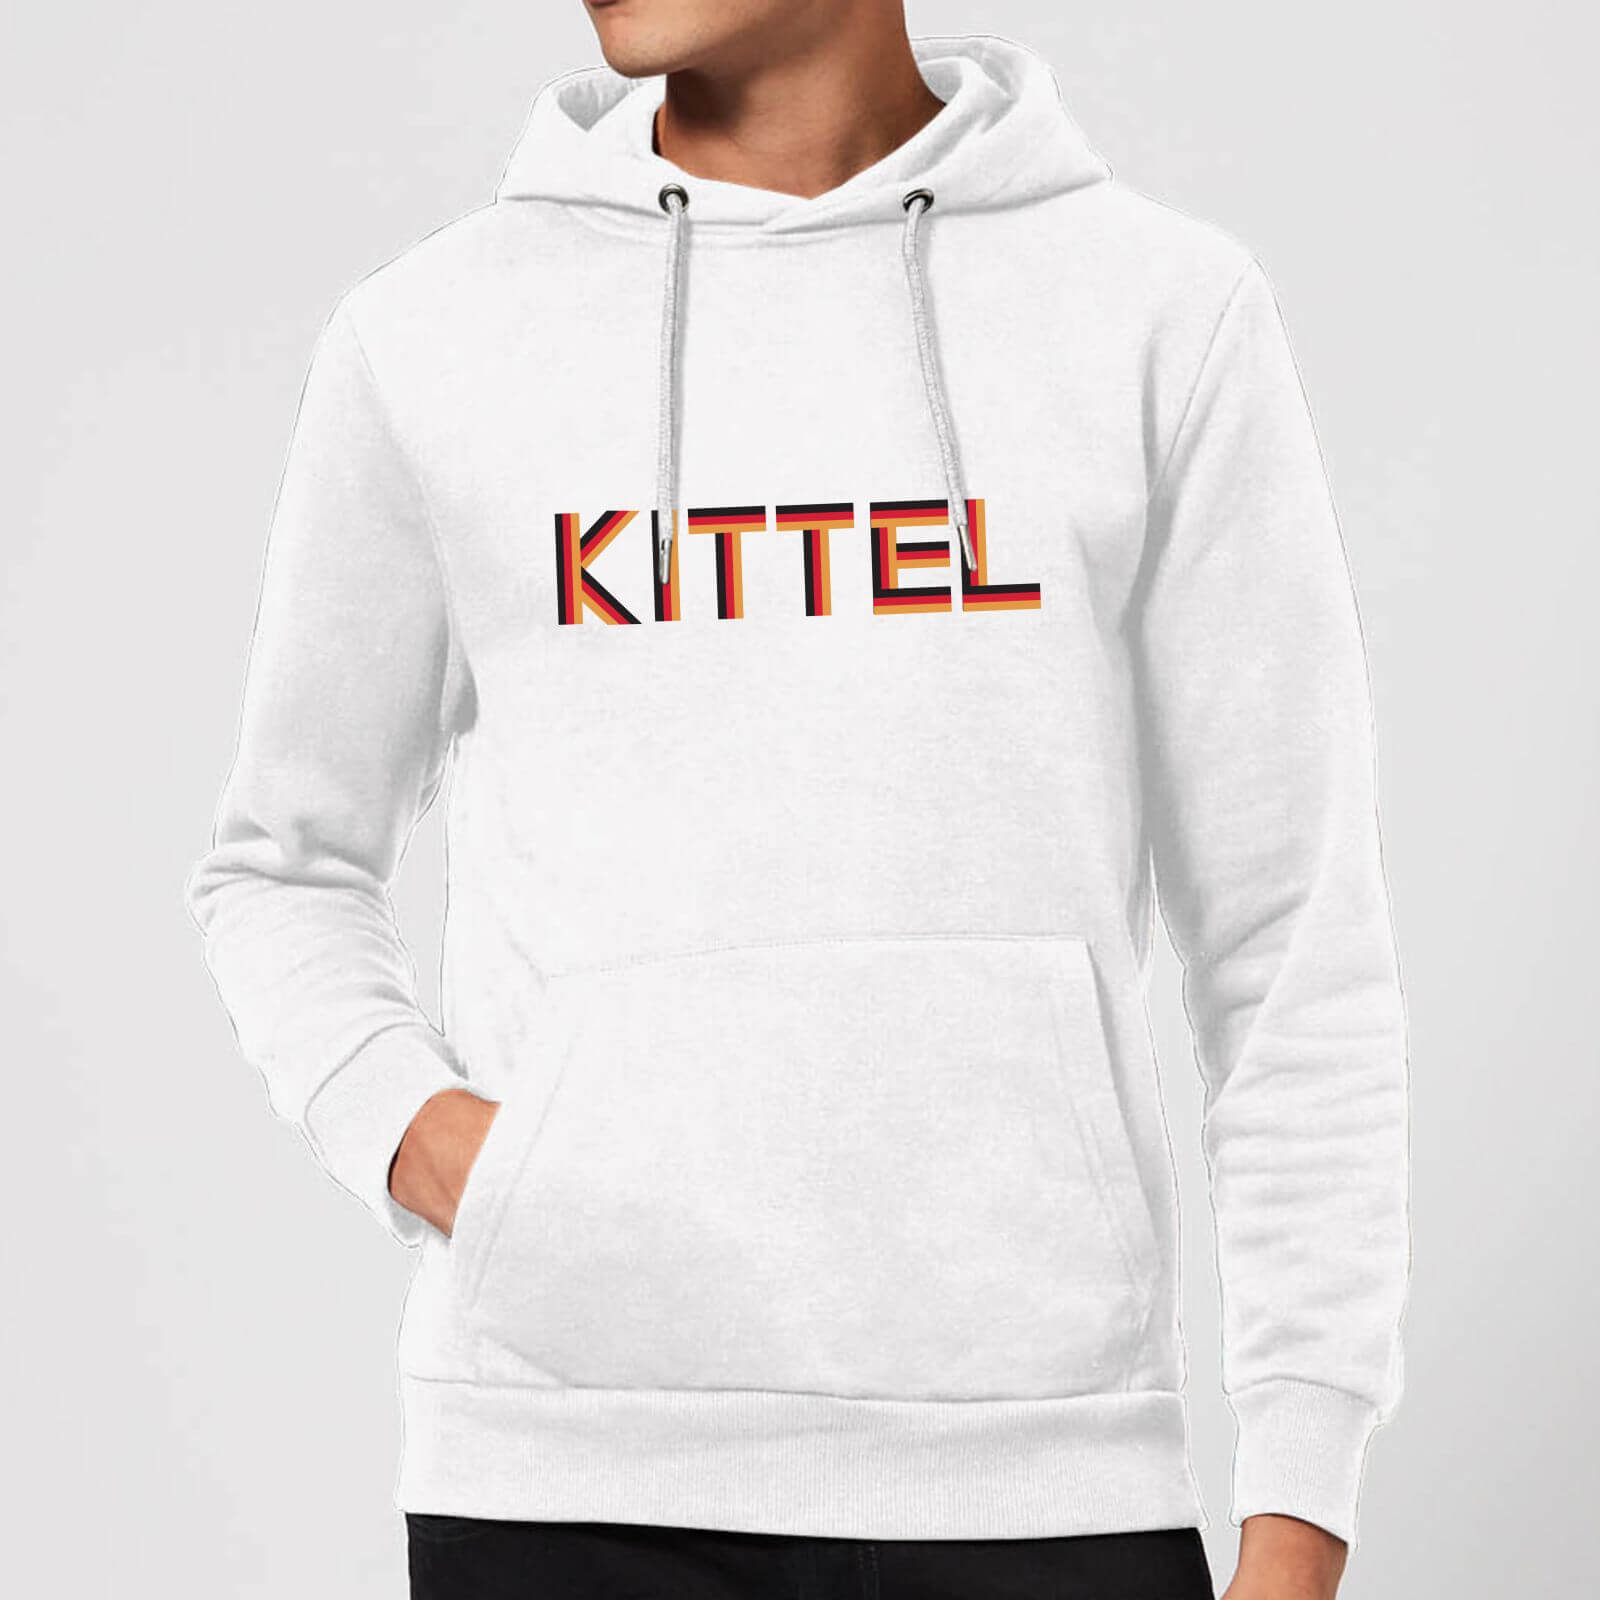 Summit Finish Kittel - Rider Name Hoodie - White - XXL - Weiß